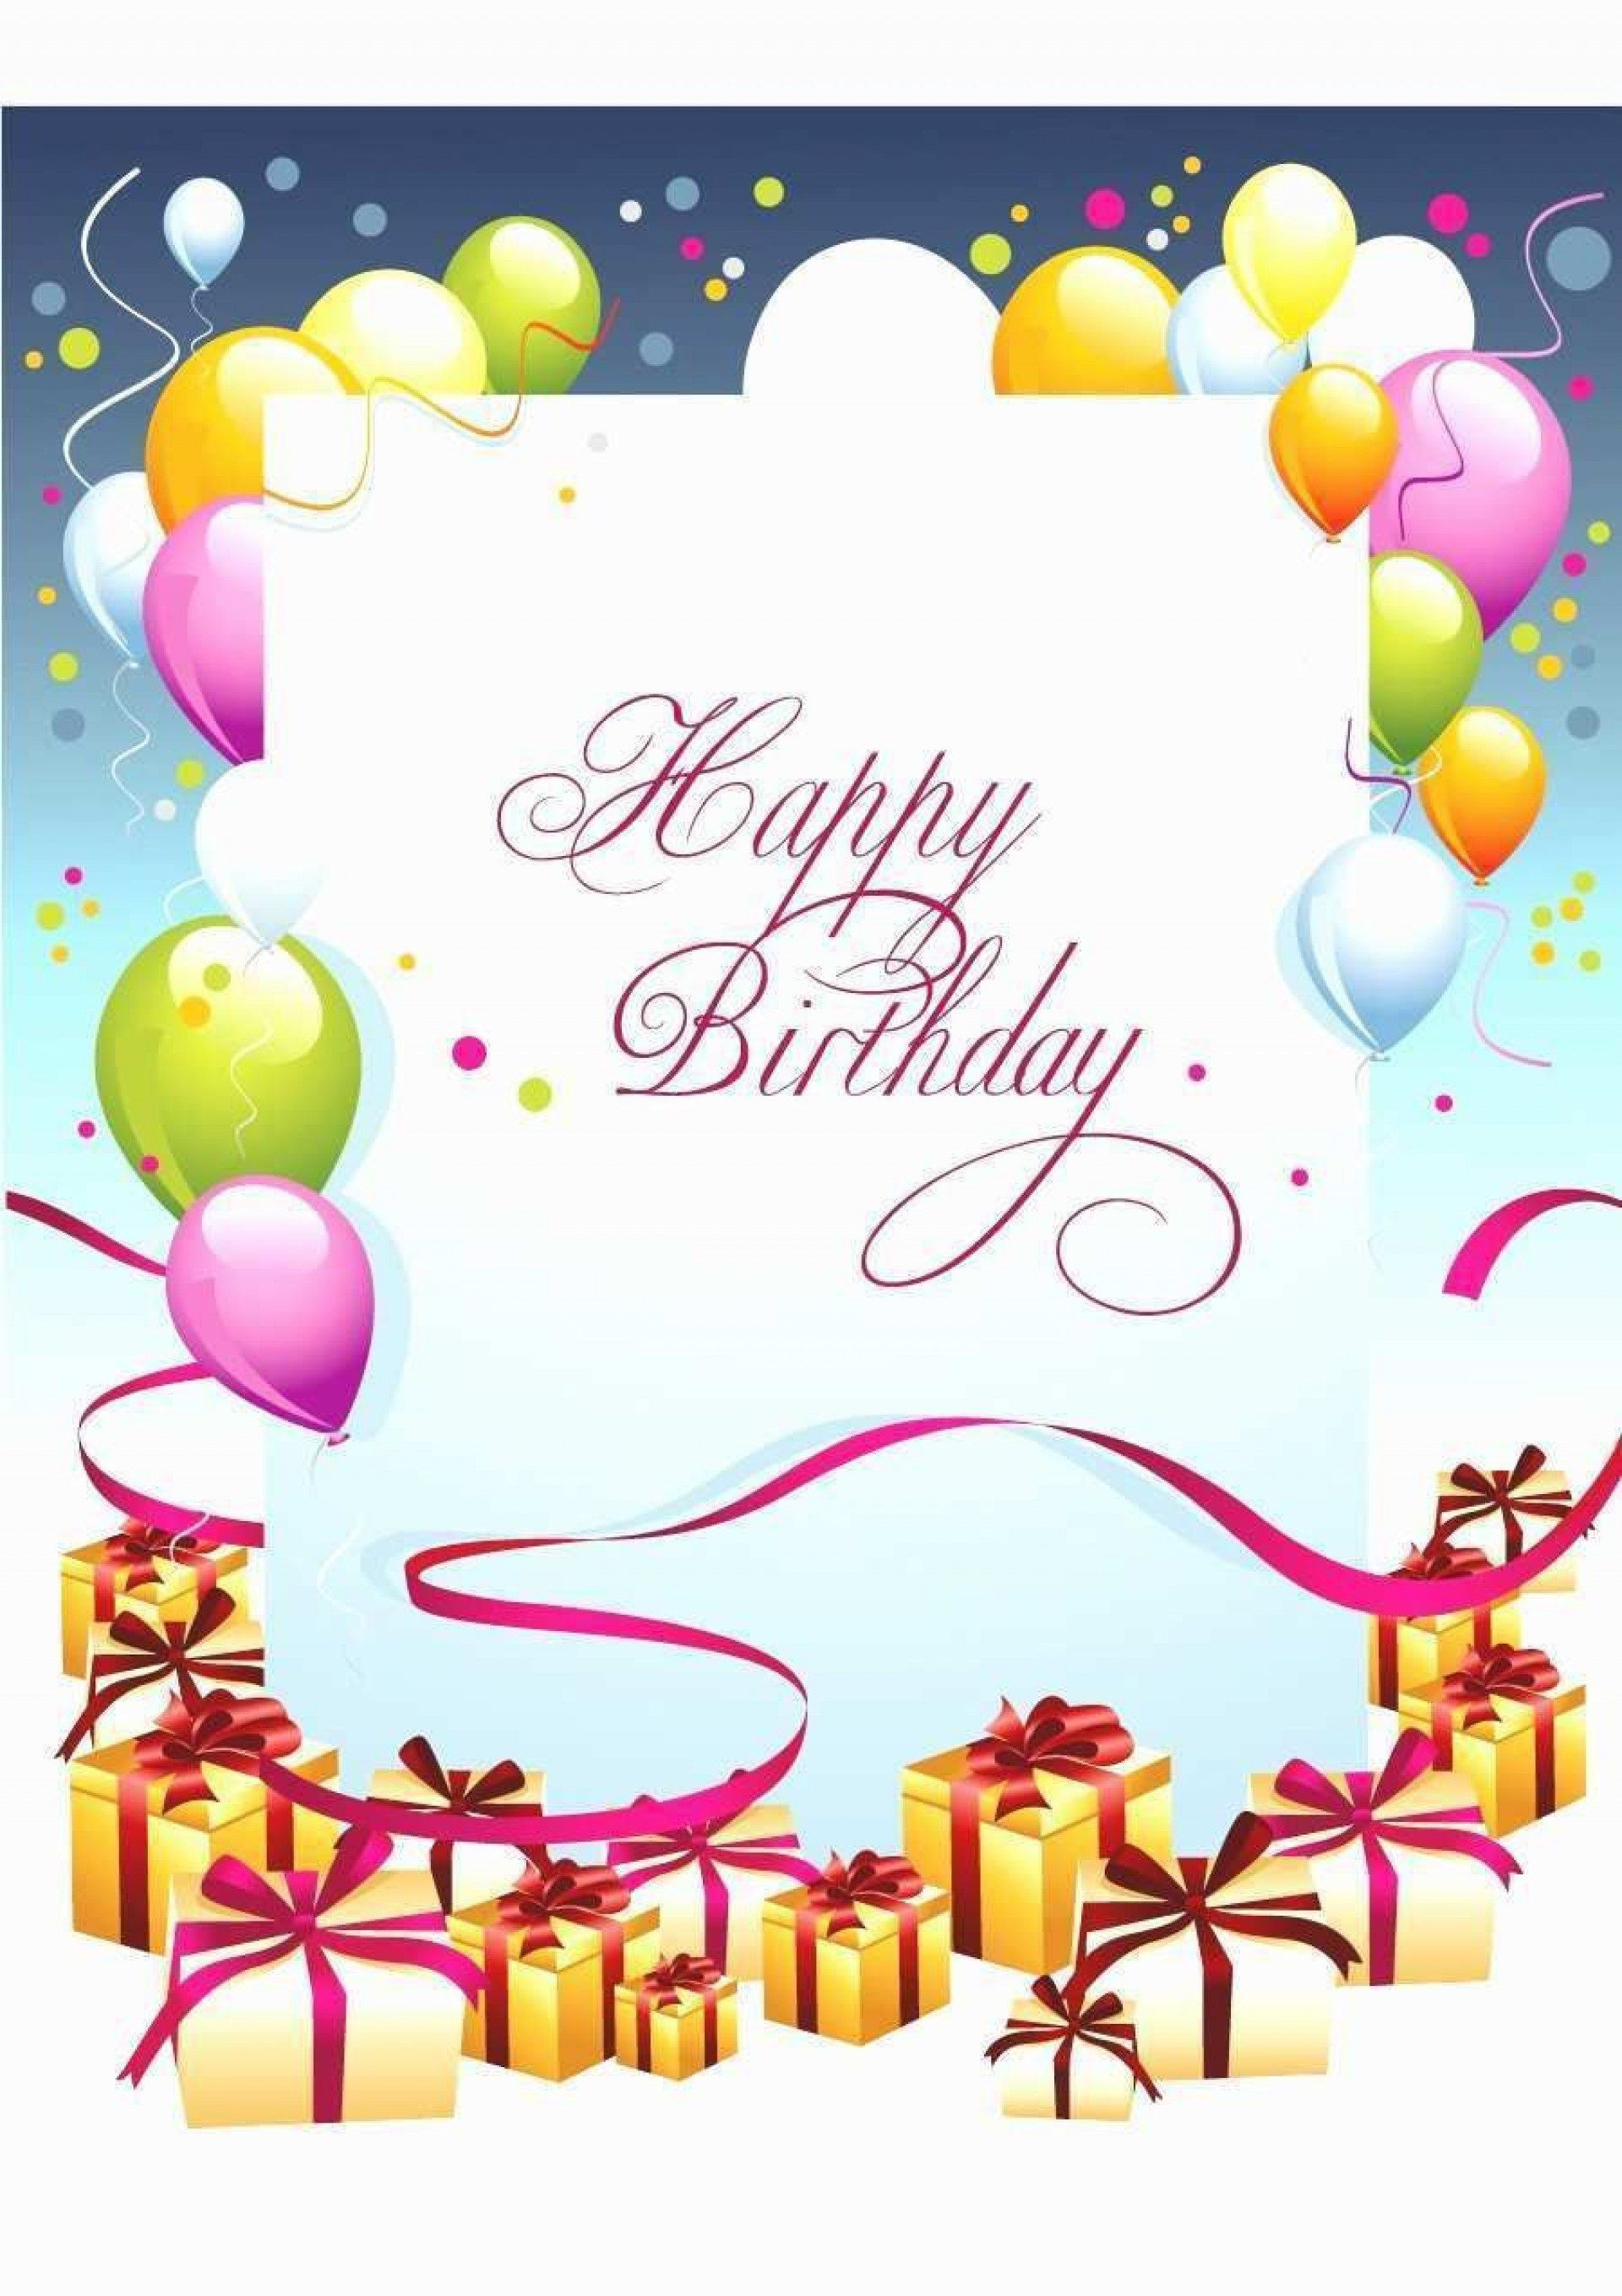 009 Staggering Birthday Card Template For Microsoft Word Inspiration  Free Greeting Layout1920